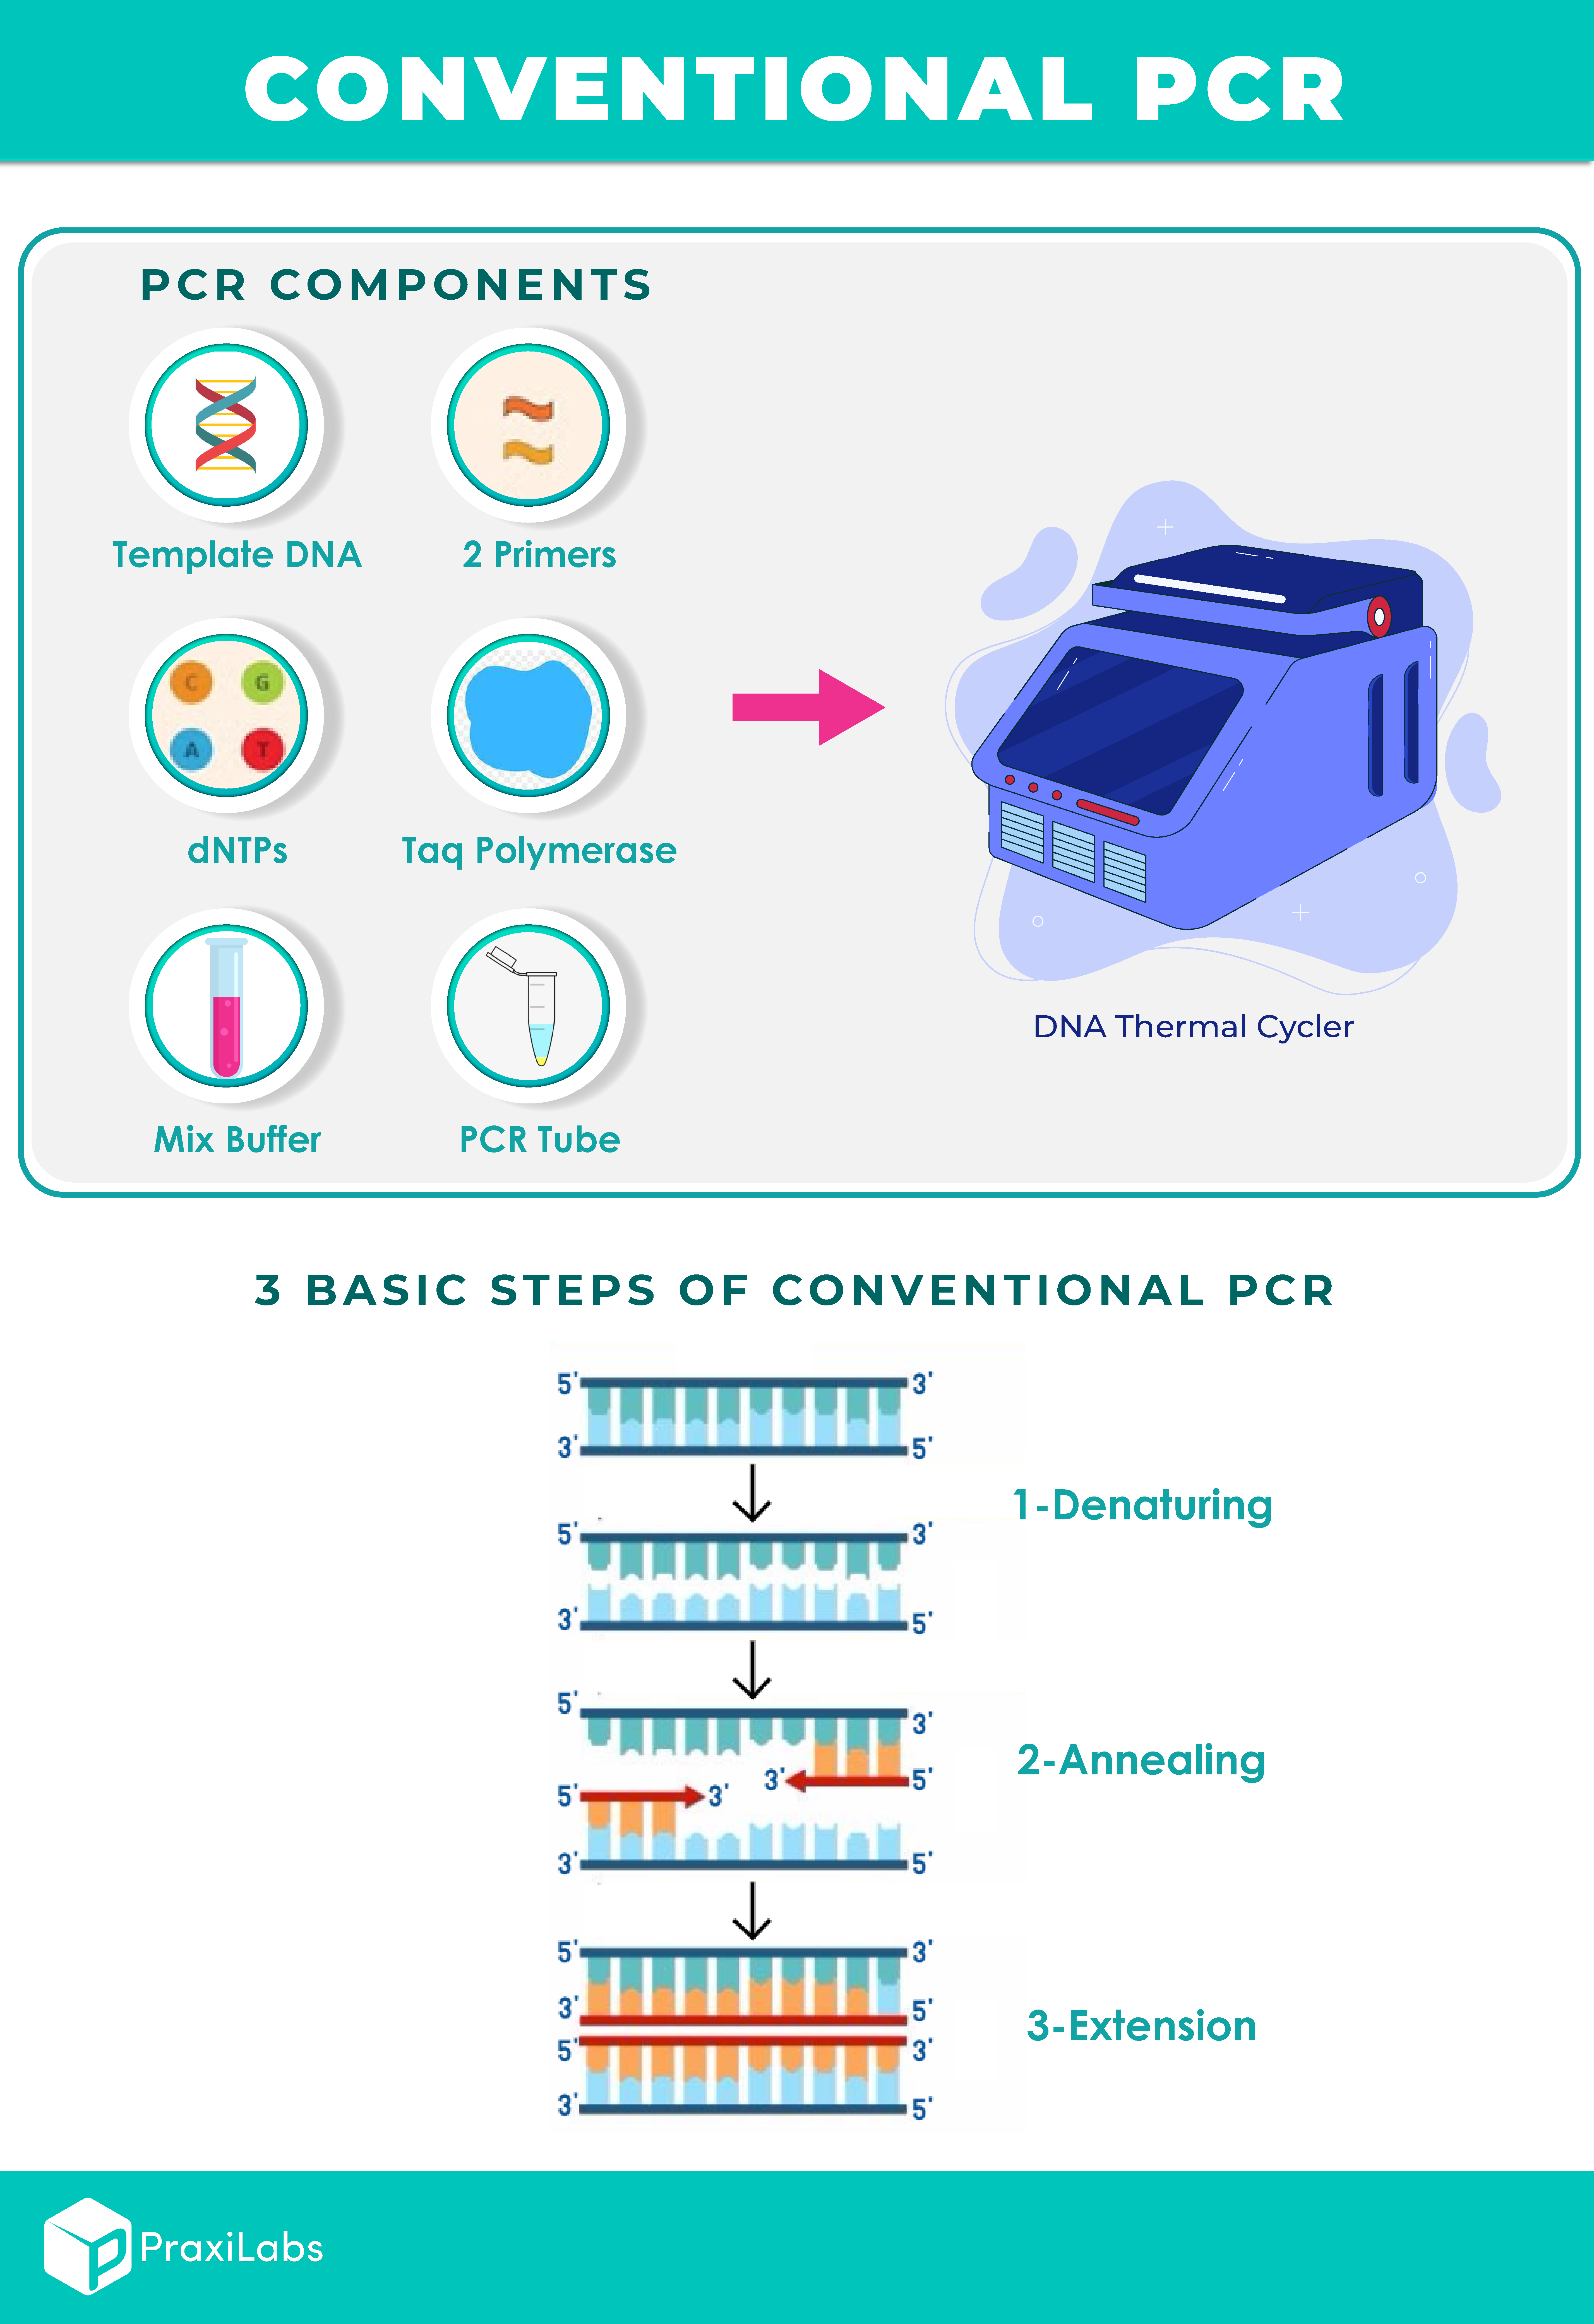 PCR steps and components